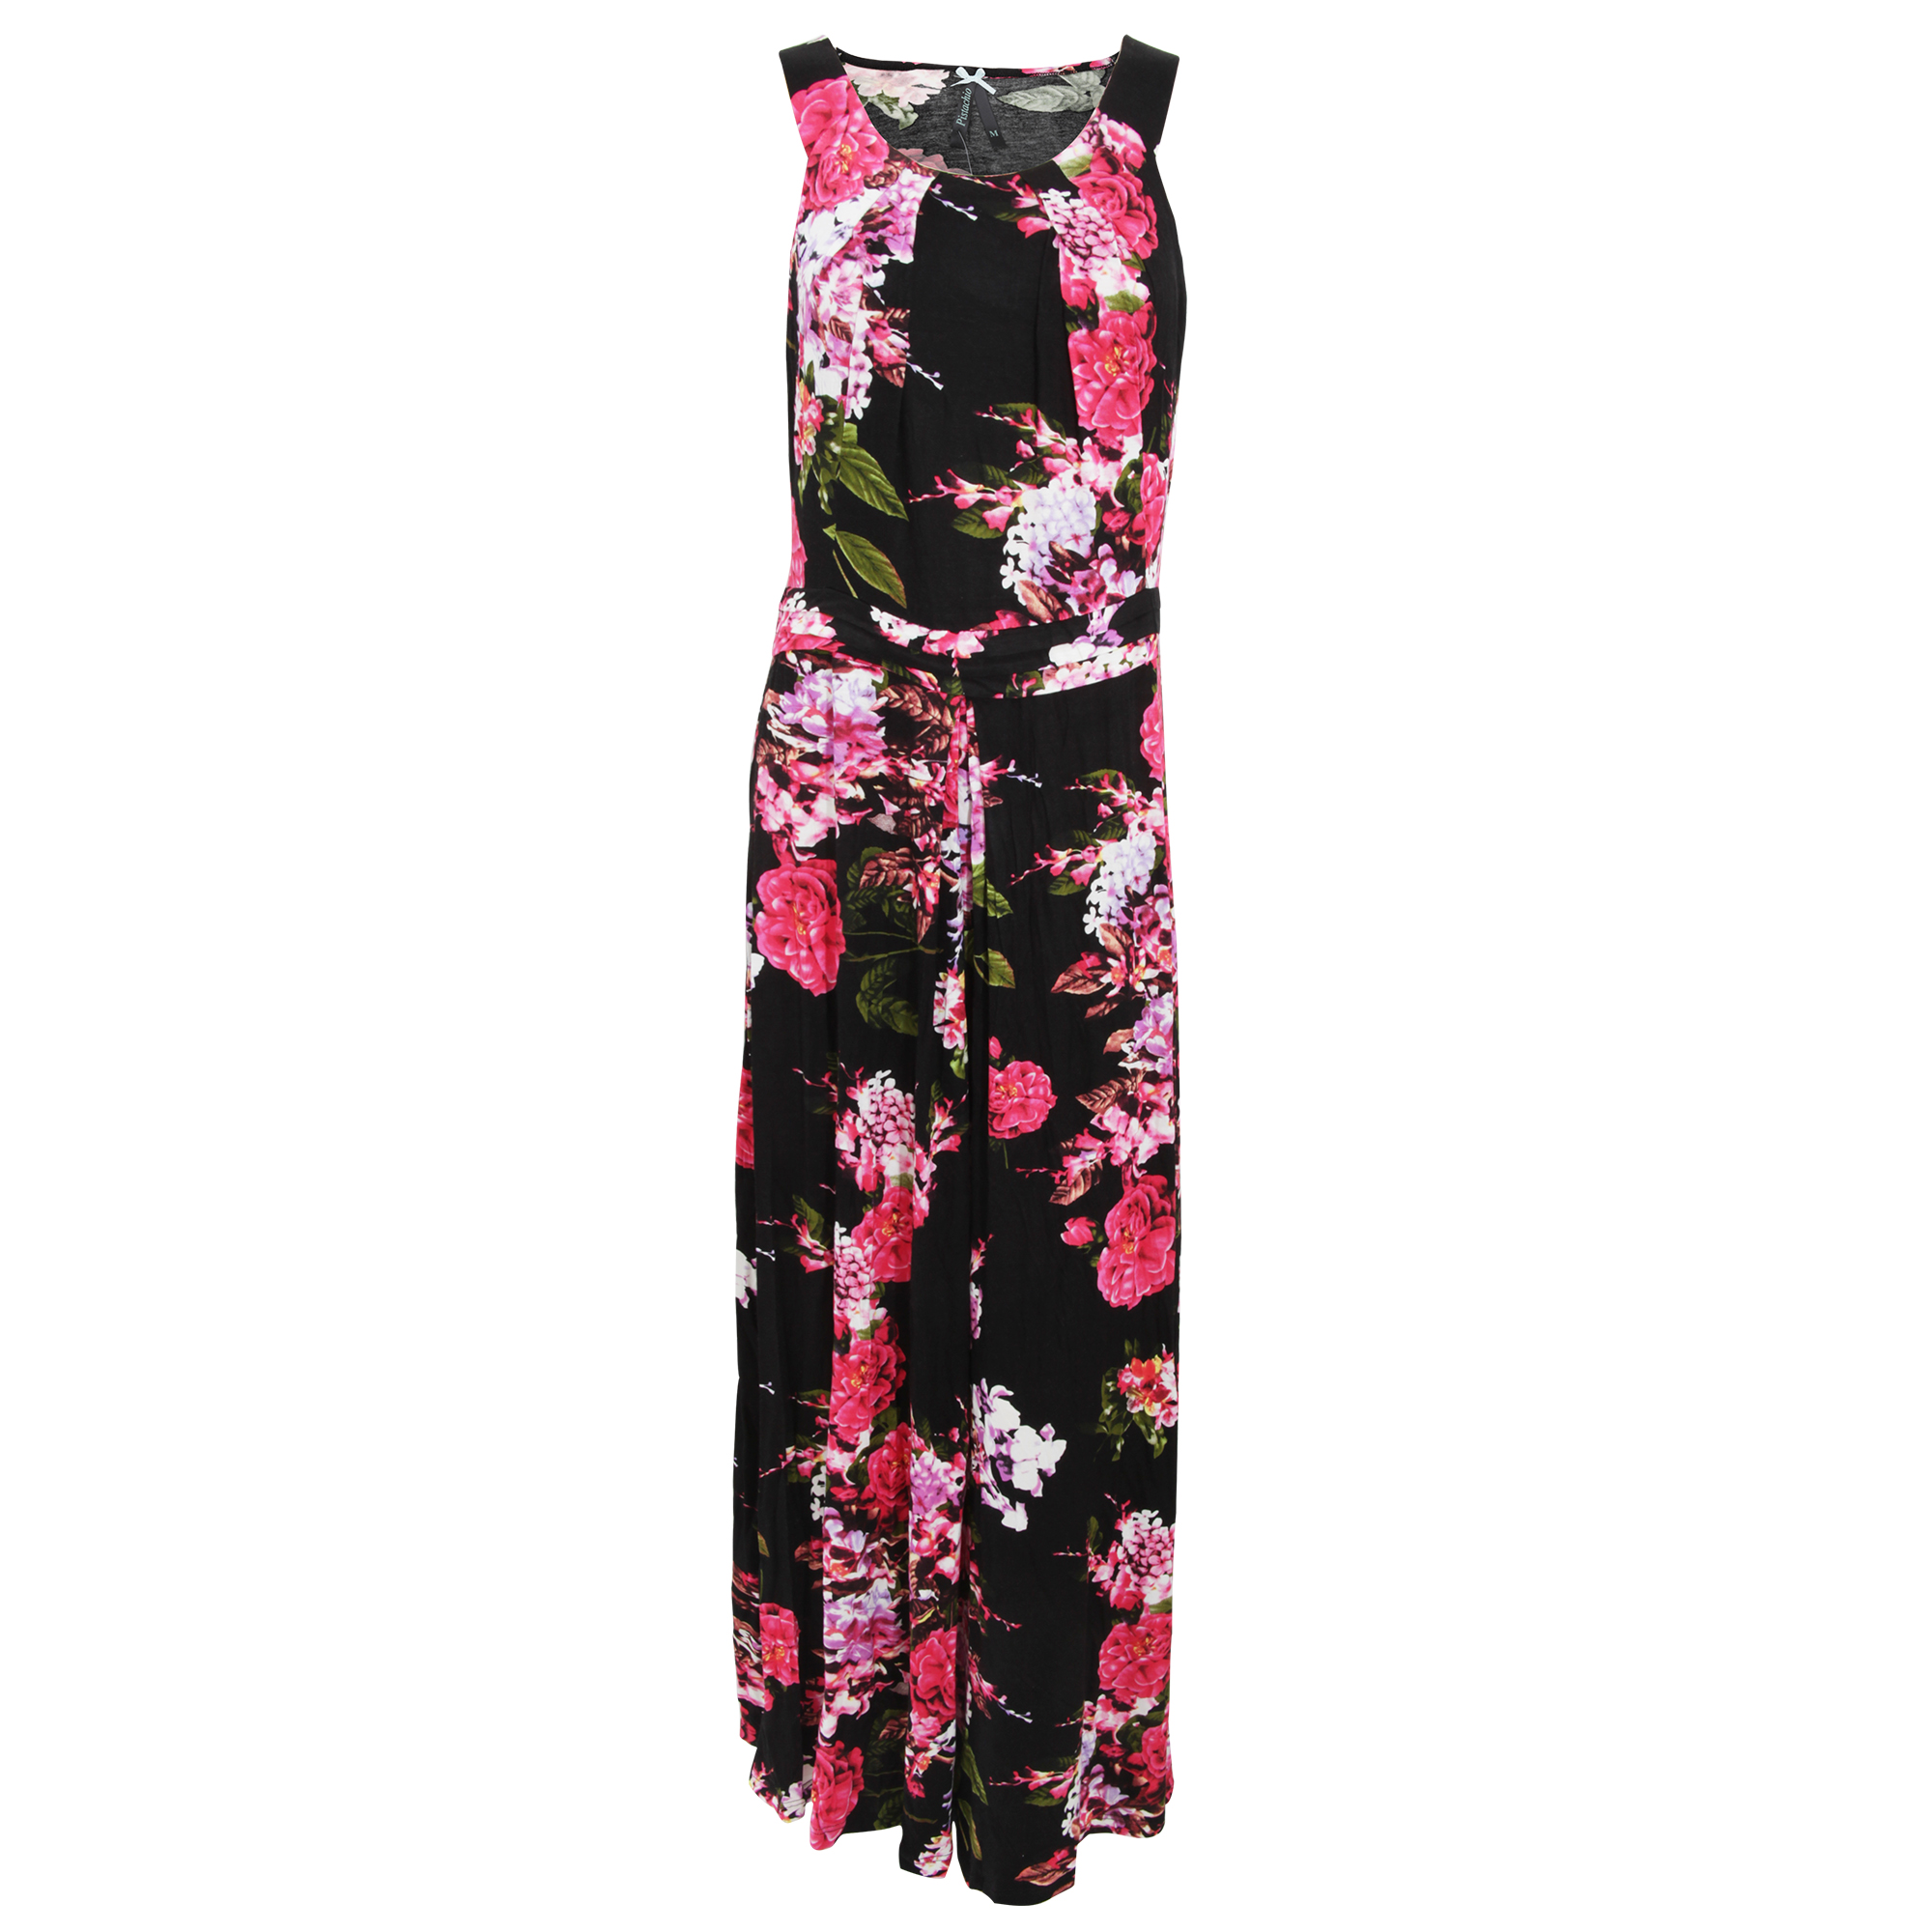 DRESS320 Womens//Ladies Rose And Heather Print Sleeveless Maxi Summer Dress